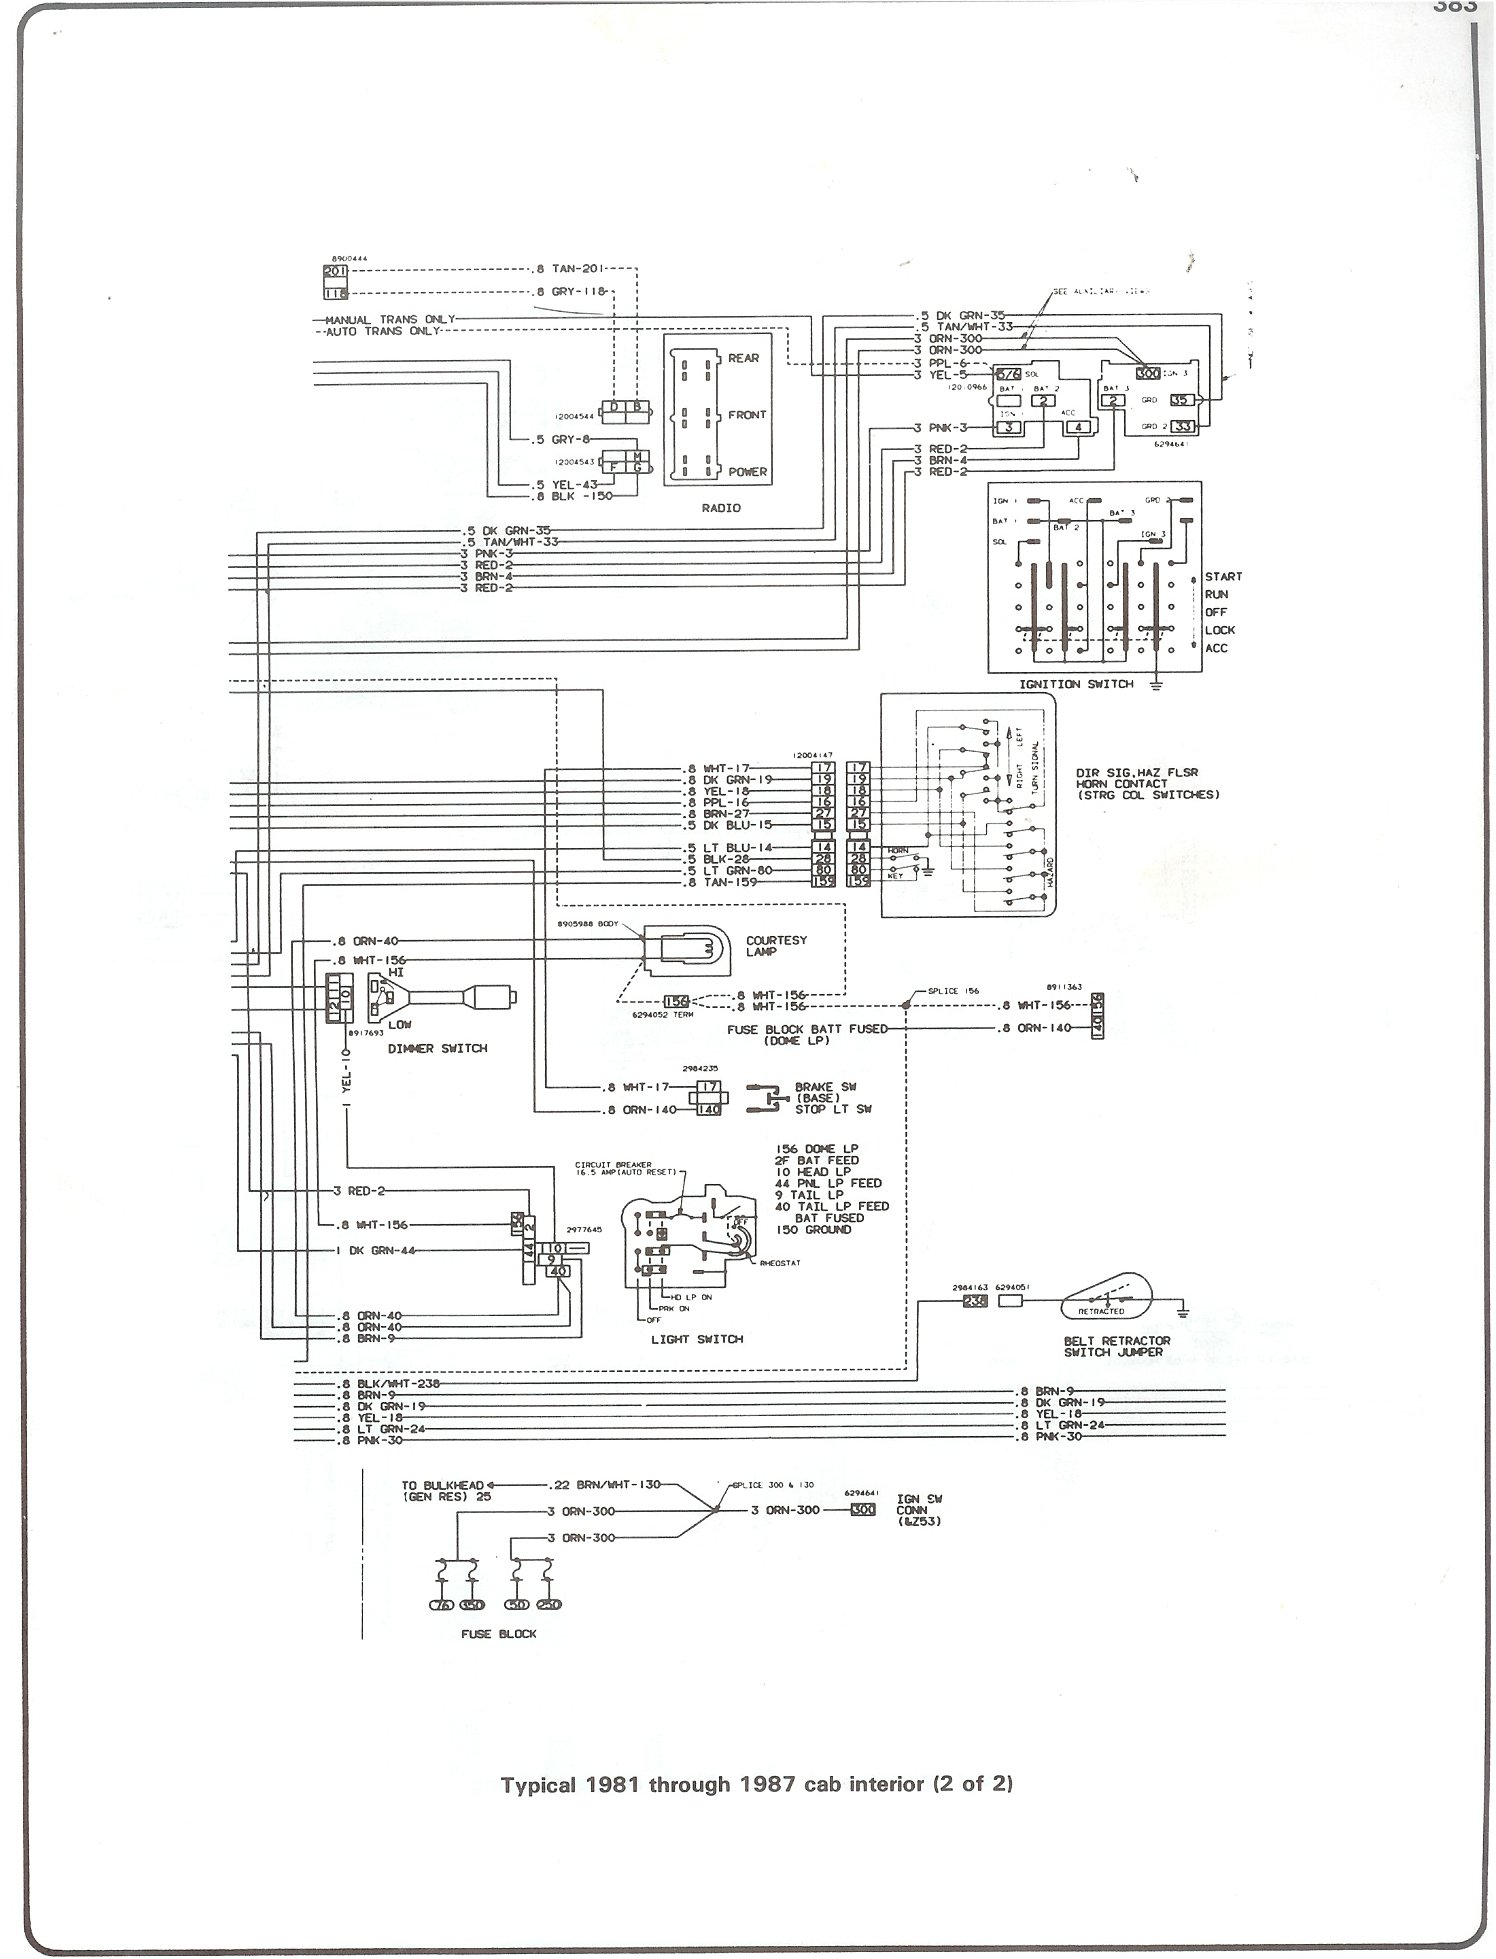 1990 Chevrolet Suburban Wiring Diagram Simple Guide About Radio Complete 73 87 Diagrams Chevy